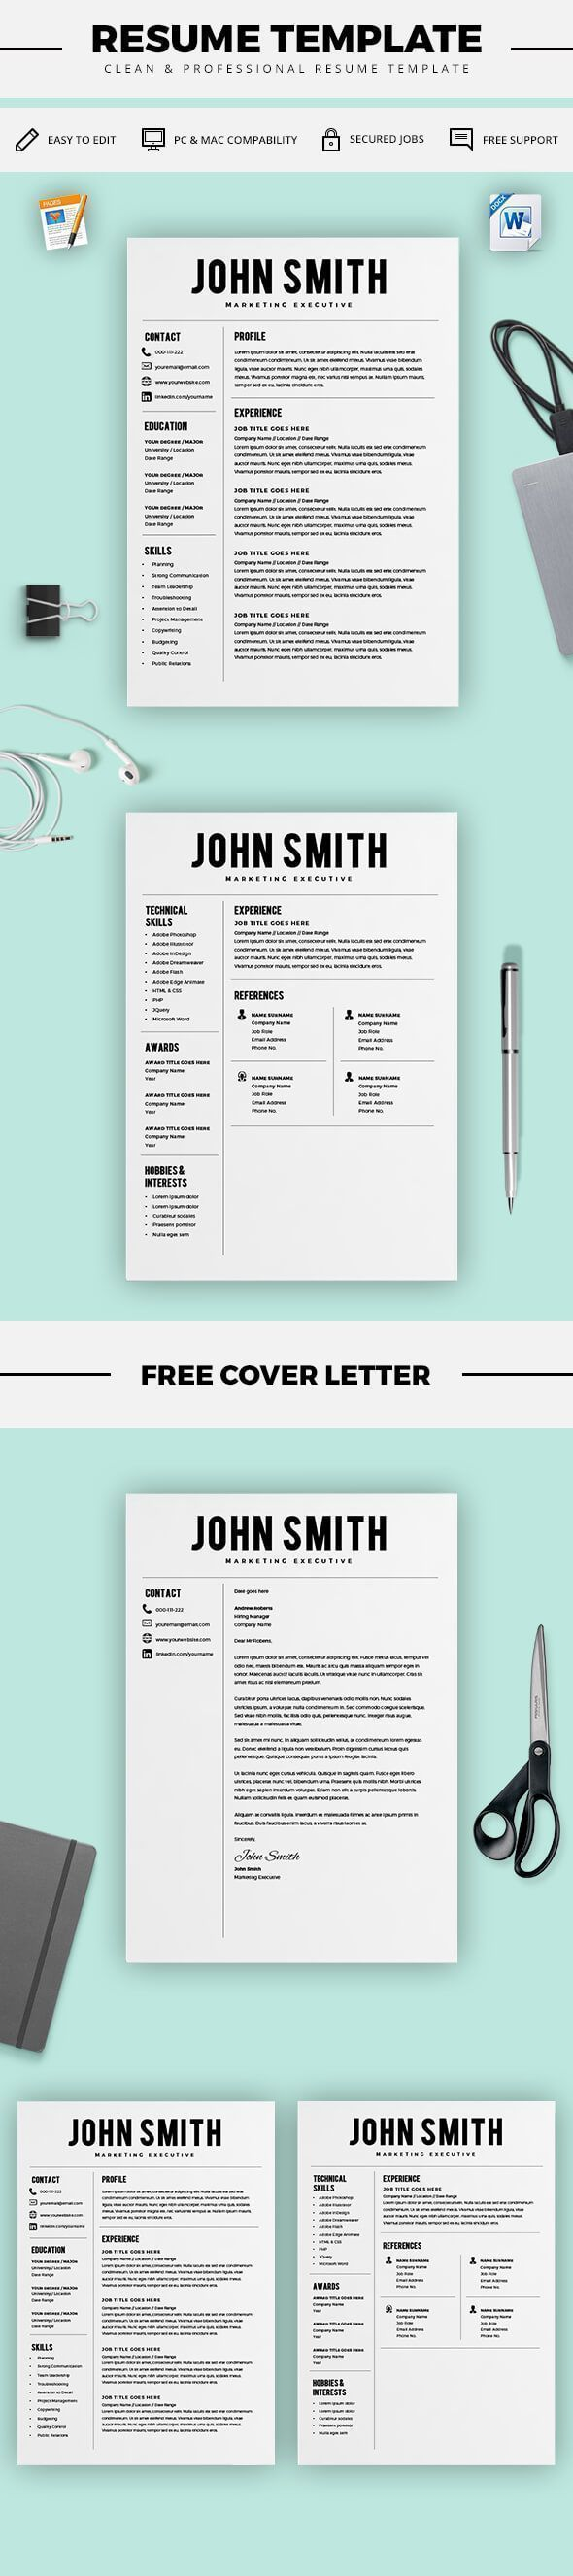 Instant Resume Templates 2032 Best Cv & Resume Design Images On Pinterest  Cv Resume